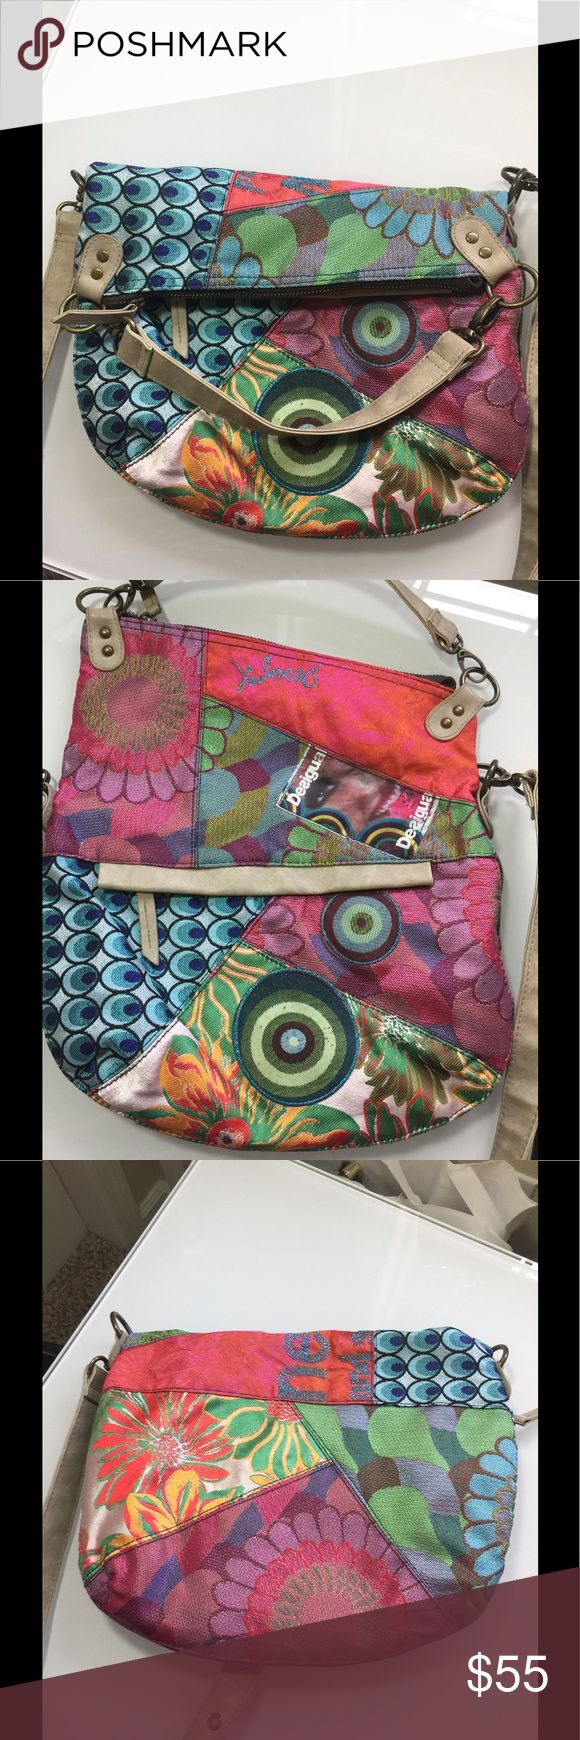 Desigual fabric handbag beautiful Gorgeous color for spring n summer adjustable width  Long n short handles strap  13 x 11 x 3 Desigual Bags